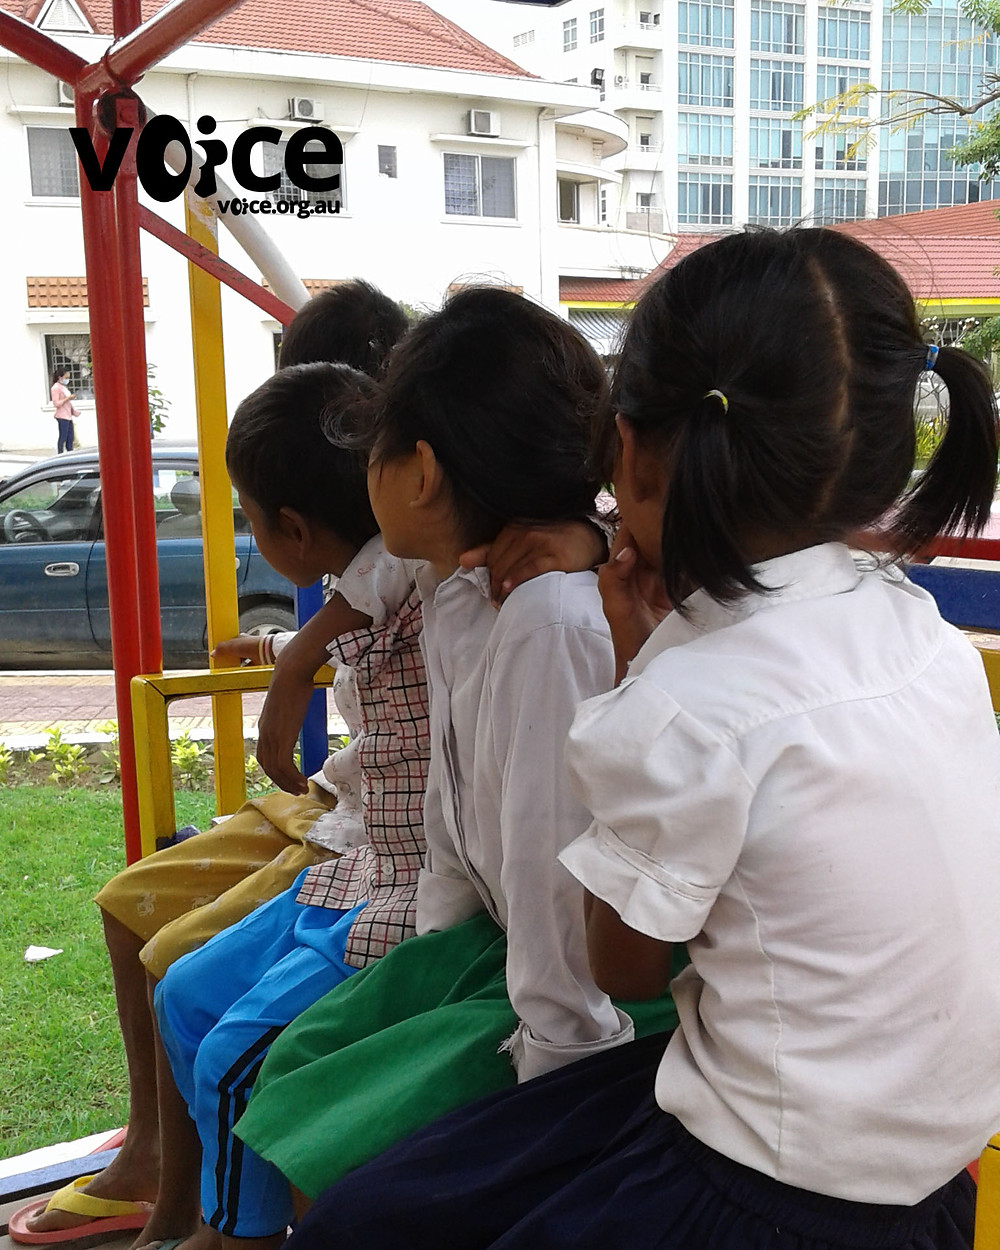 Children with Thalassaemia Major sit on bench